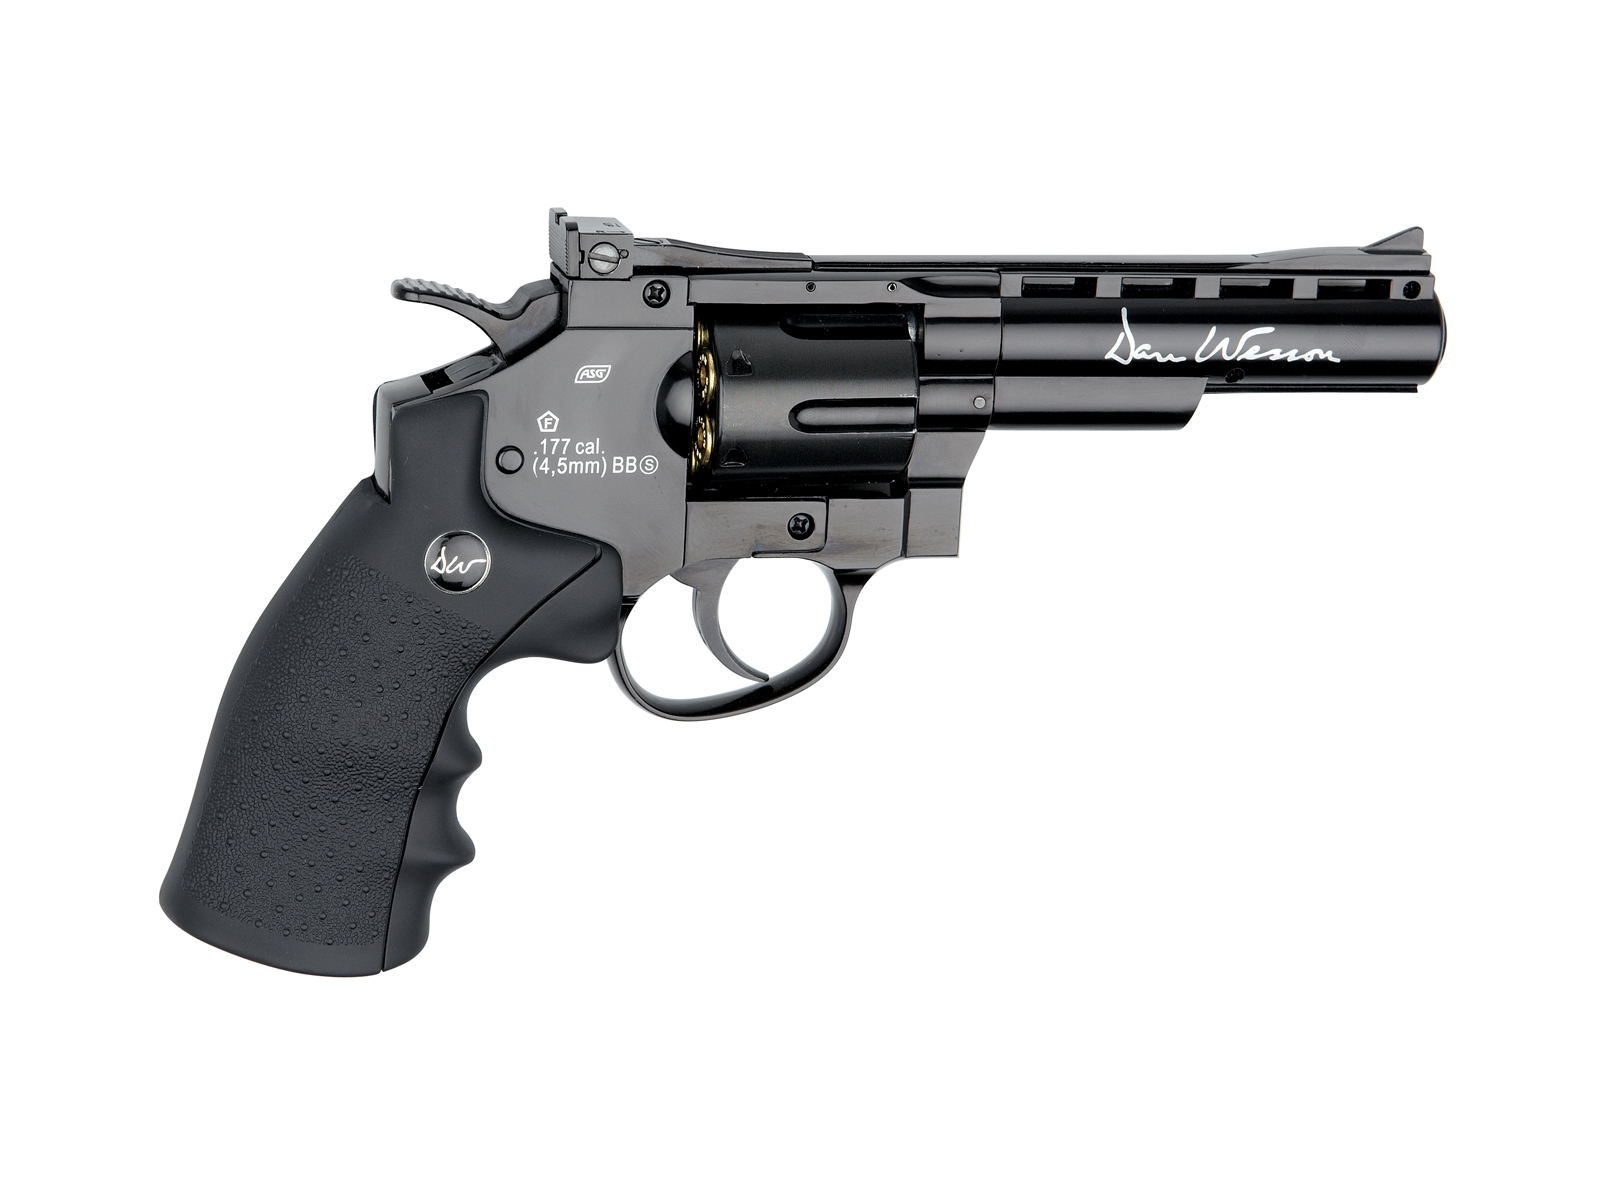 "Légpisztoly Dan Wesson 4"" cal. 4,5 mm revolver"